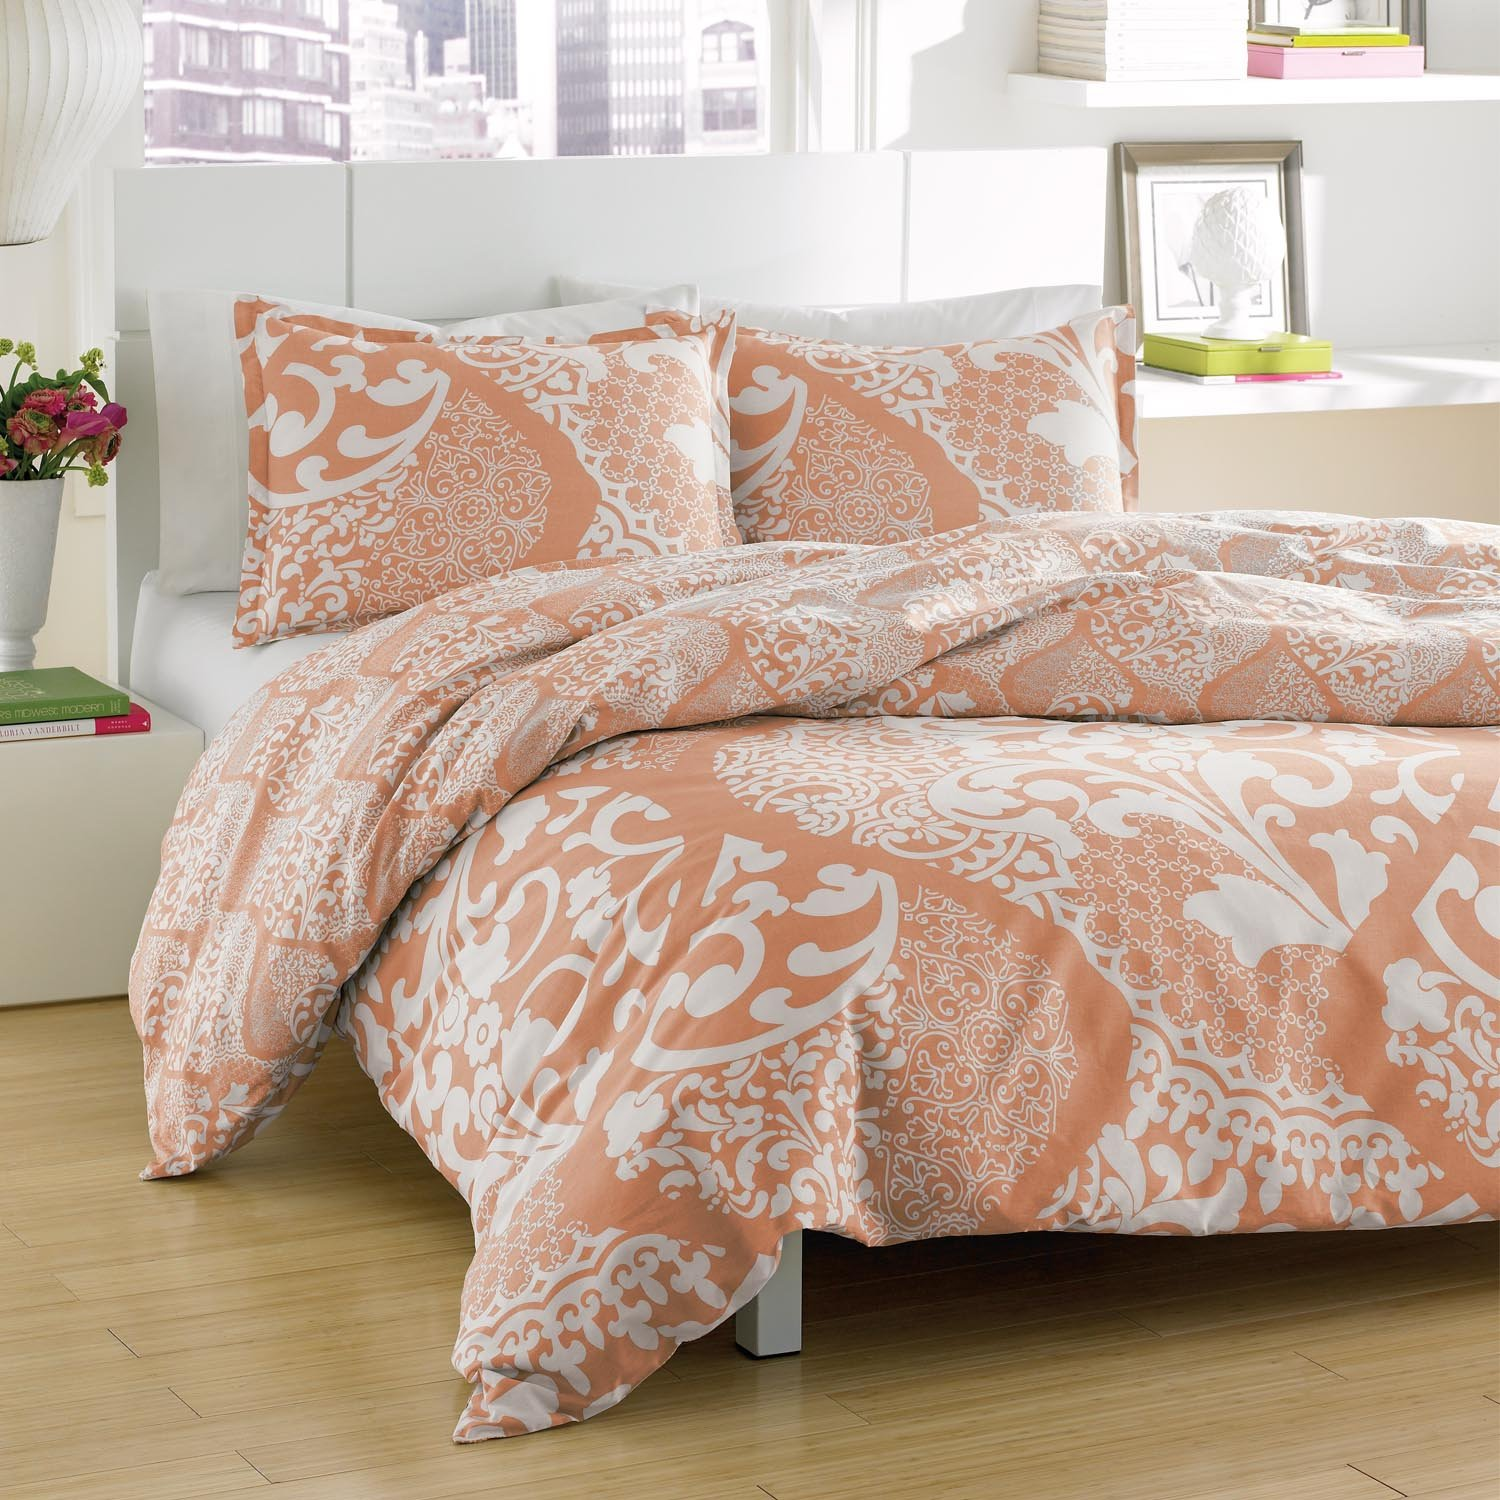 City Scene Bedding Sets Ease Bedding With Style